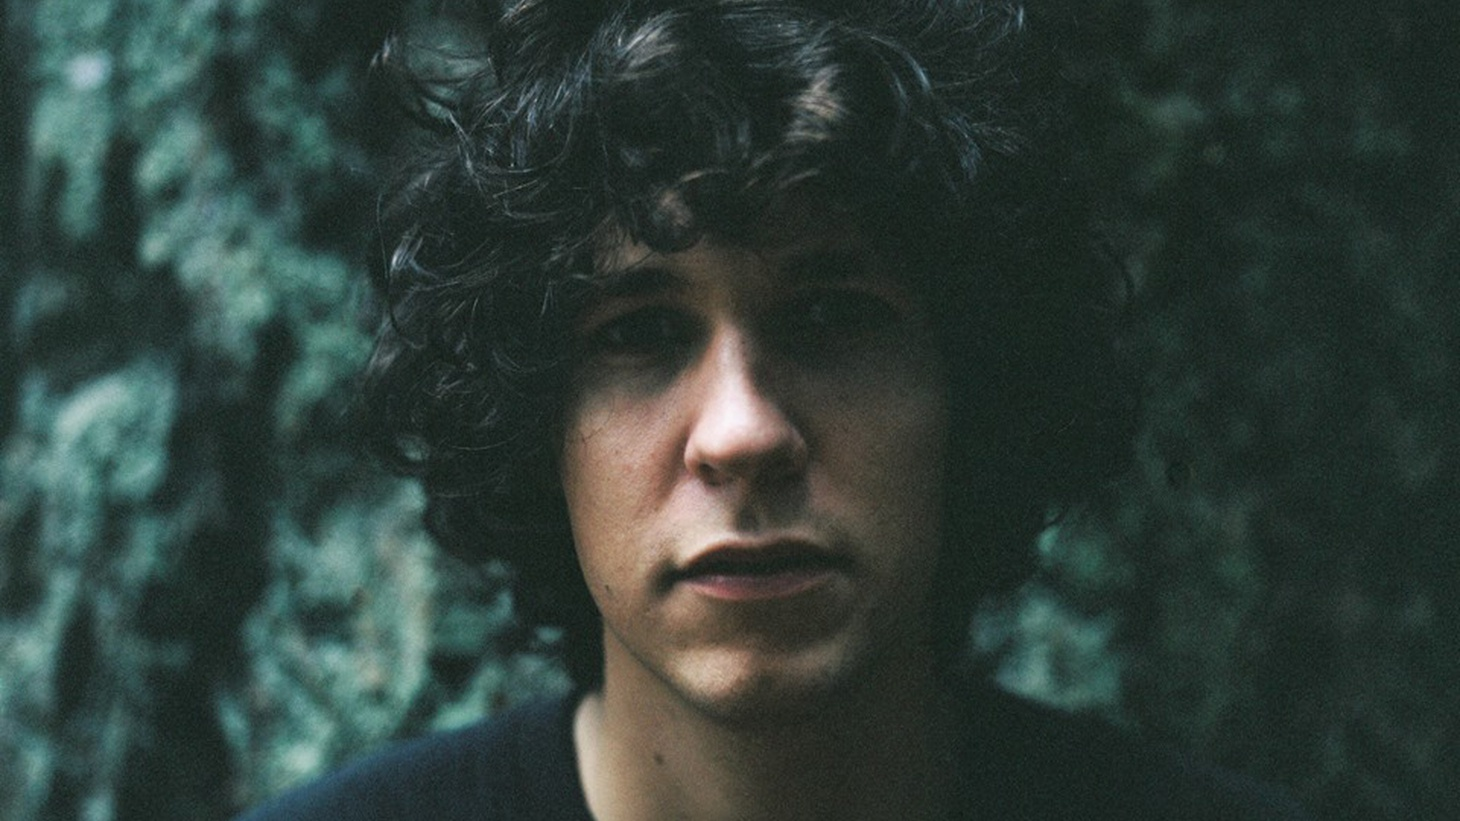 Tobias Jesso Jr. released his debut full-length album of gut wrenchingly beautiful and powerful piano ballads this Spring.